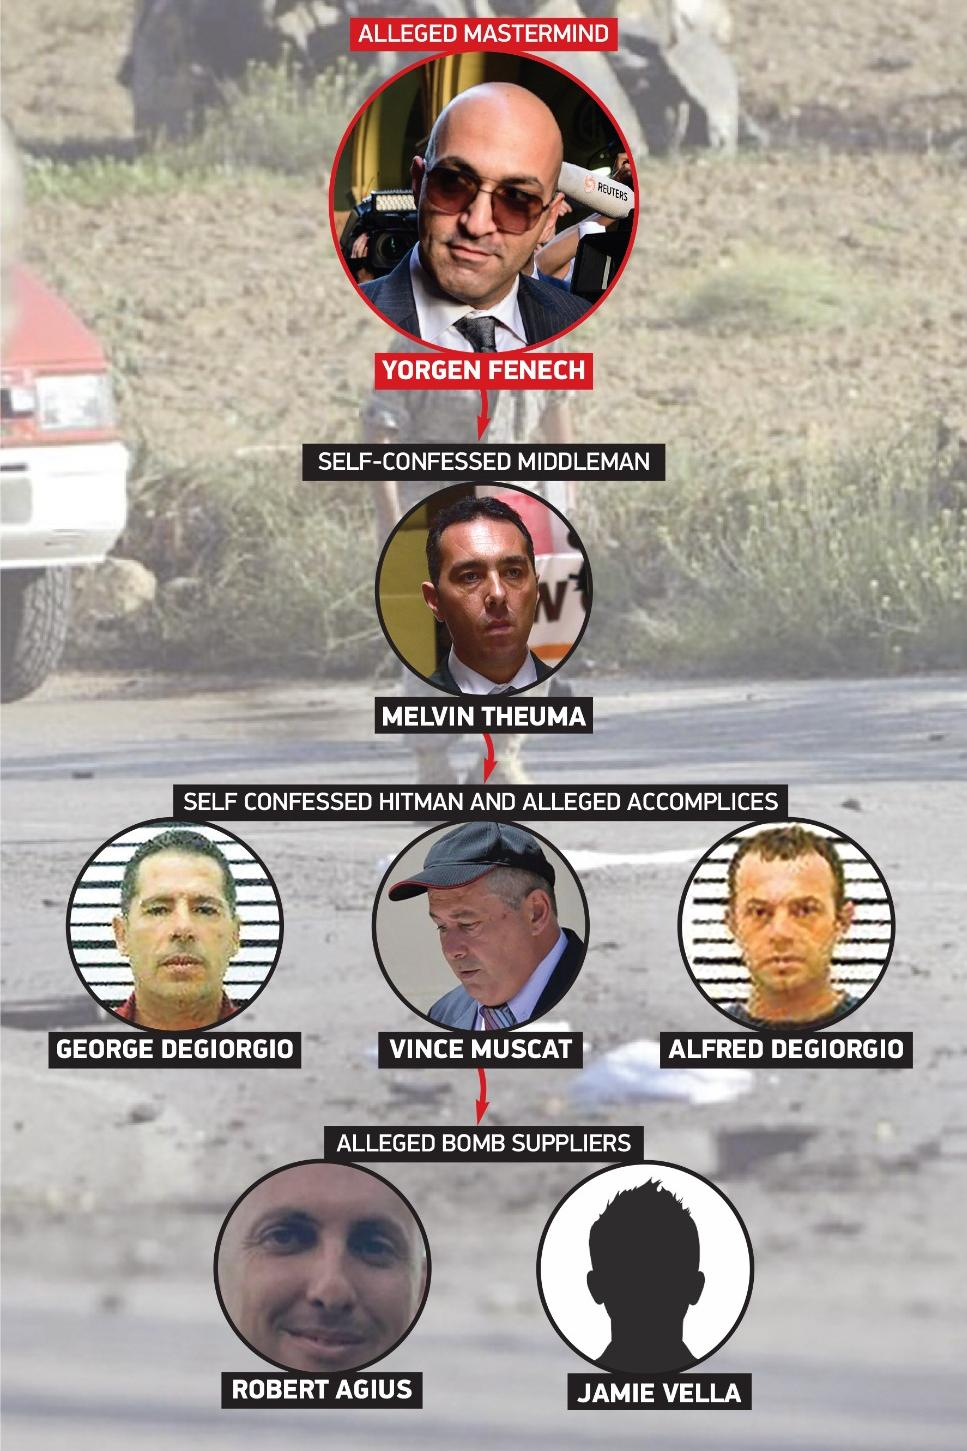 Police have linked six people to the murder of Daphne Caruana Galizia. Graphic: Christian Busuttil/Design Studio